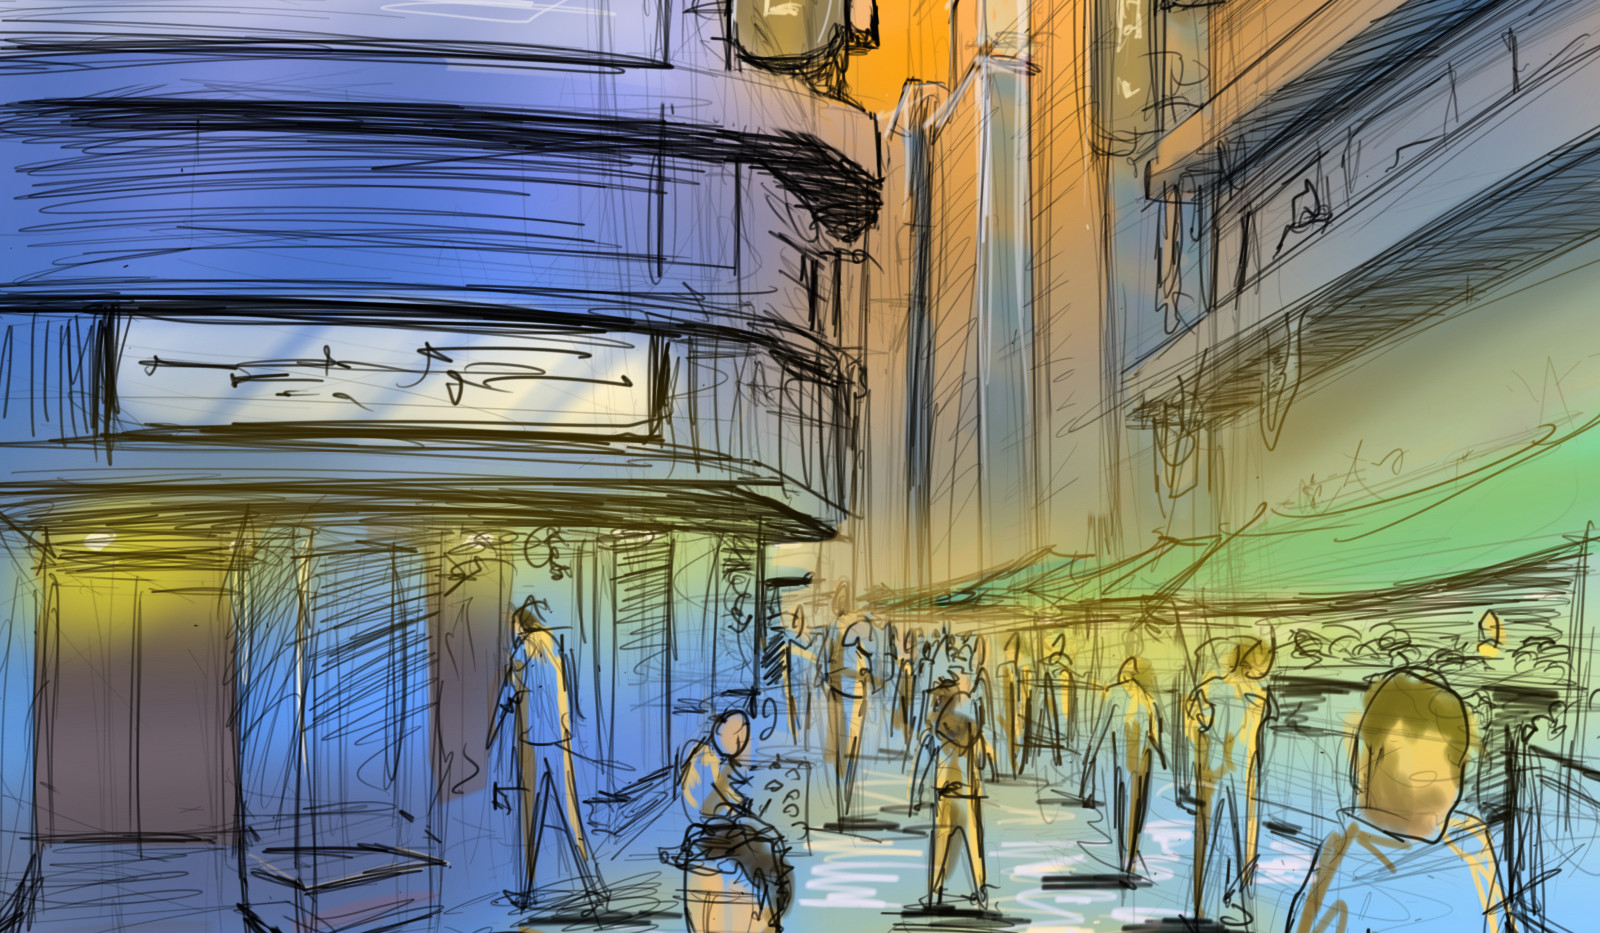 Quick Sketch of a Downtown Cairo Nightmarket